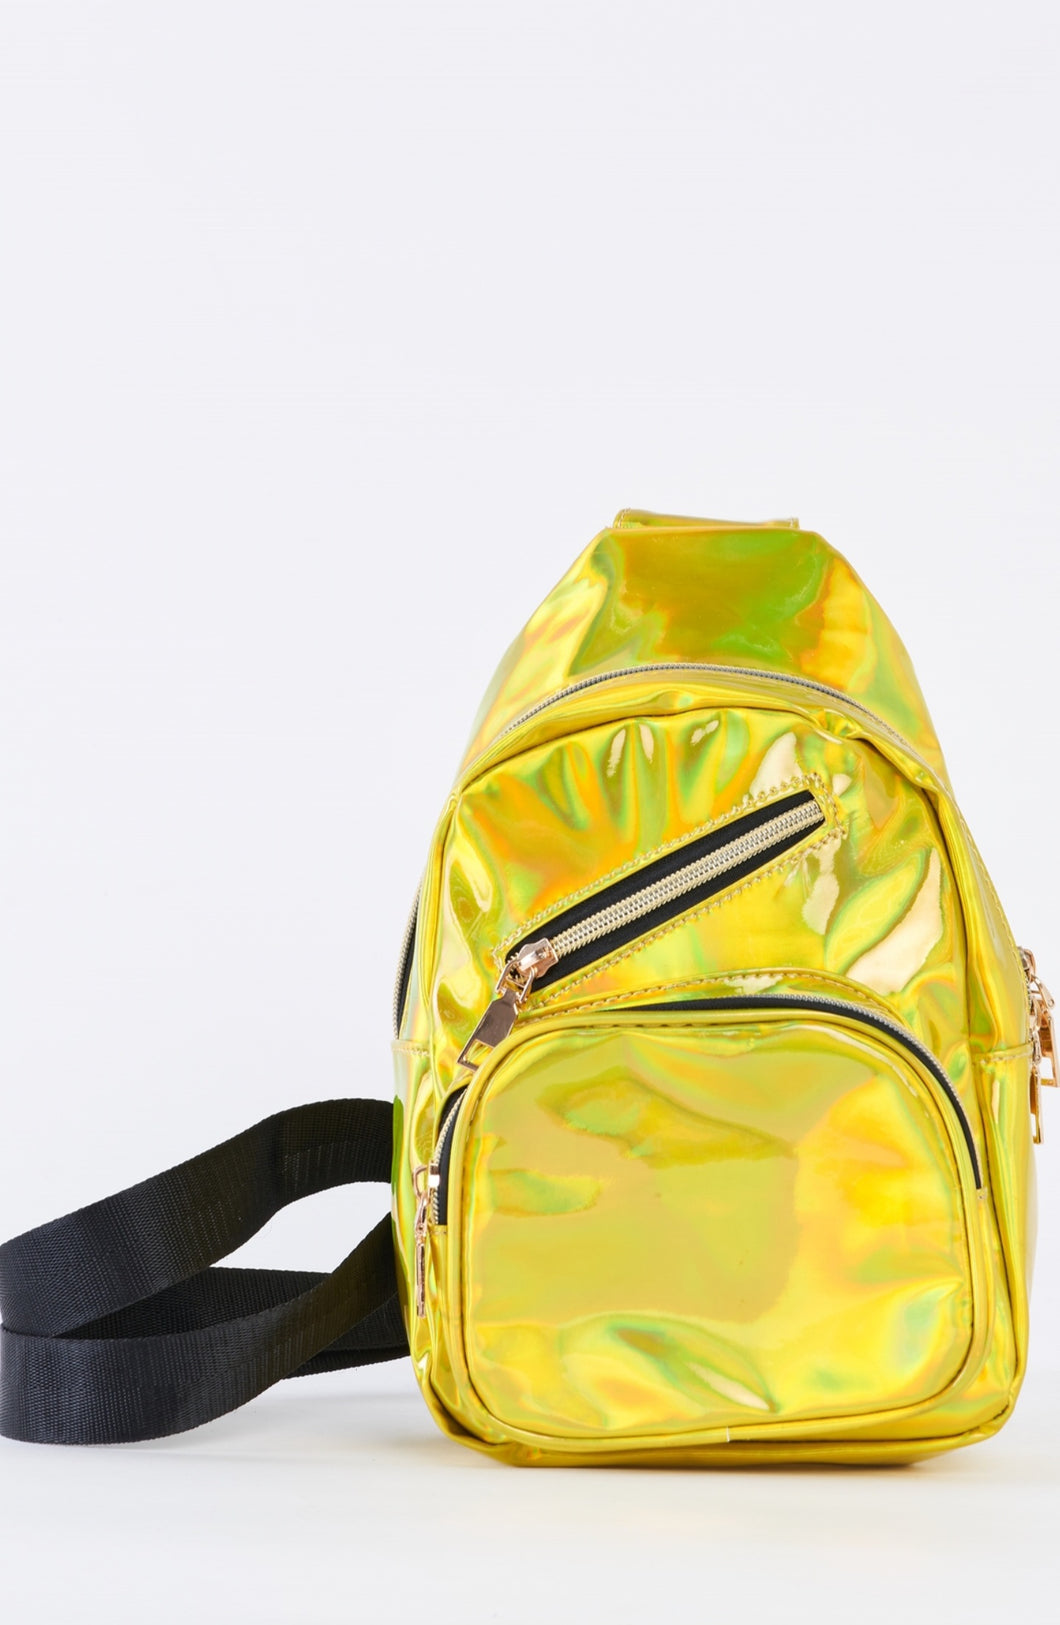 Neon yellow metallic single strap sling mini backpack